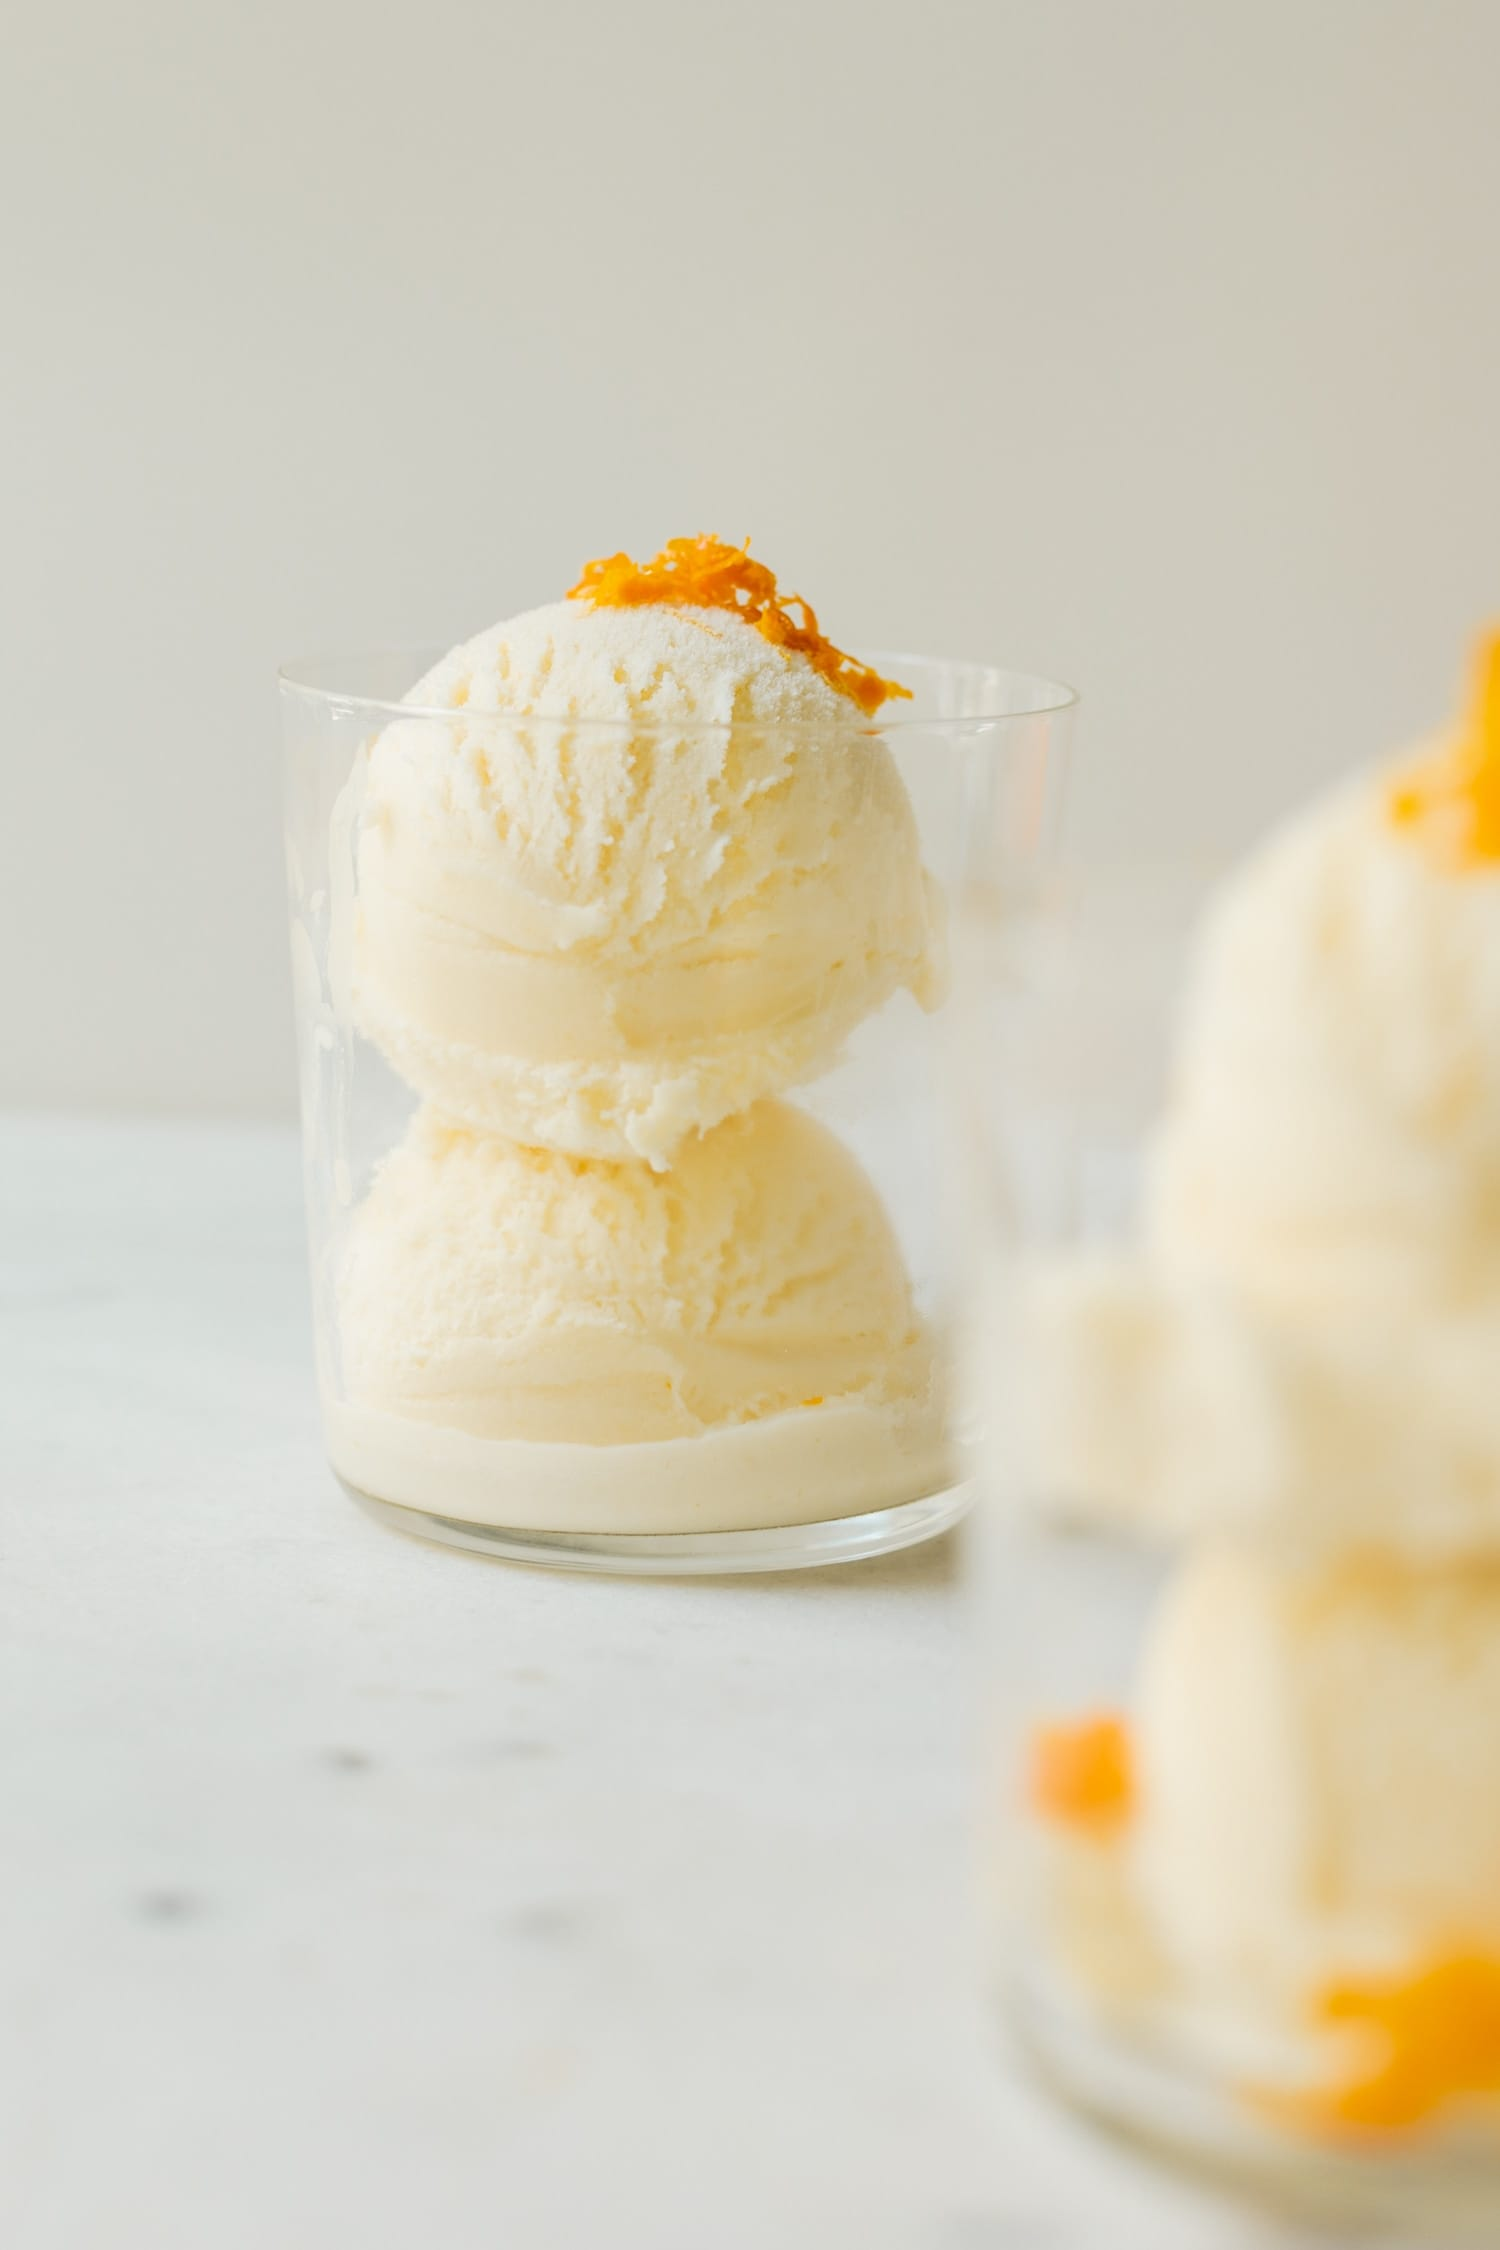 Mimosa ice cream speckled with orange zest pieces in a clear glass on marble surface with second ice cream glass in foreground